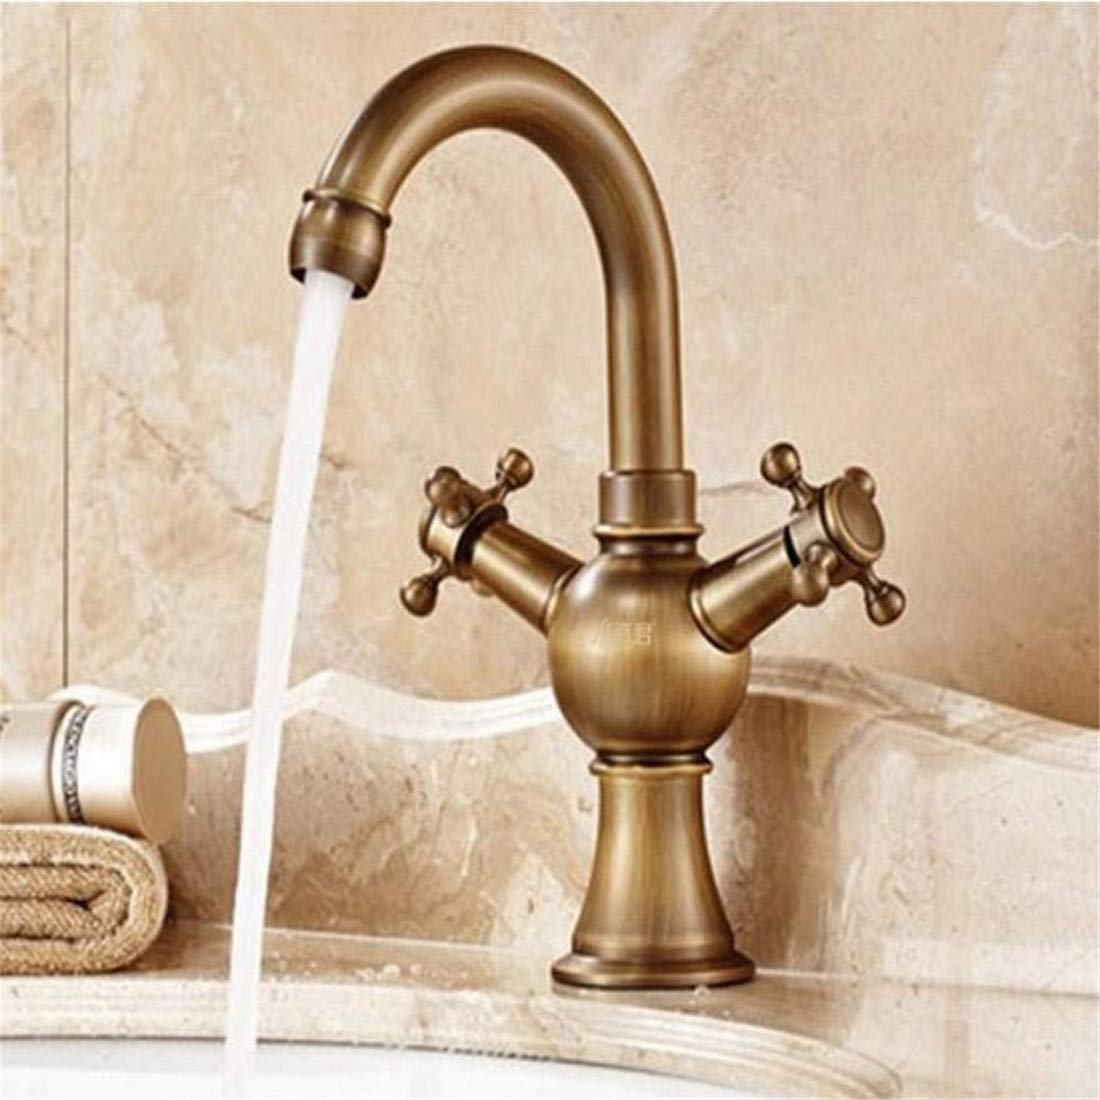 Retro Kitchen Hot and Cold Water 360 Degree redation Faucet Above Counter Basin Copper Antique Hot and Cold Kitchen Washing Dishes Wash Mixed